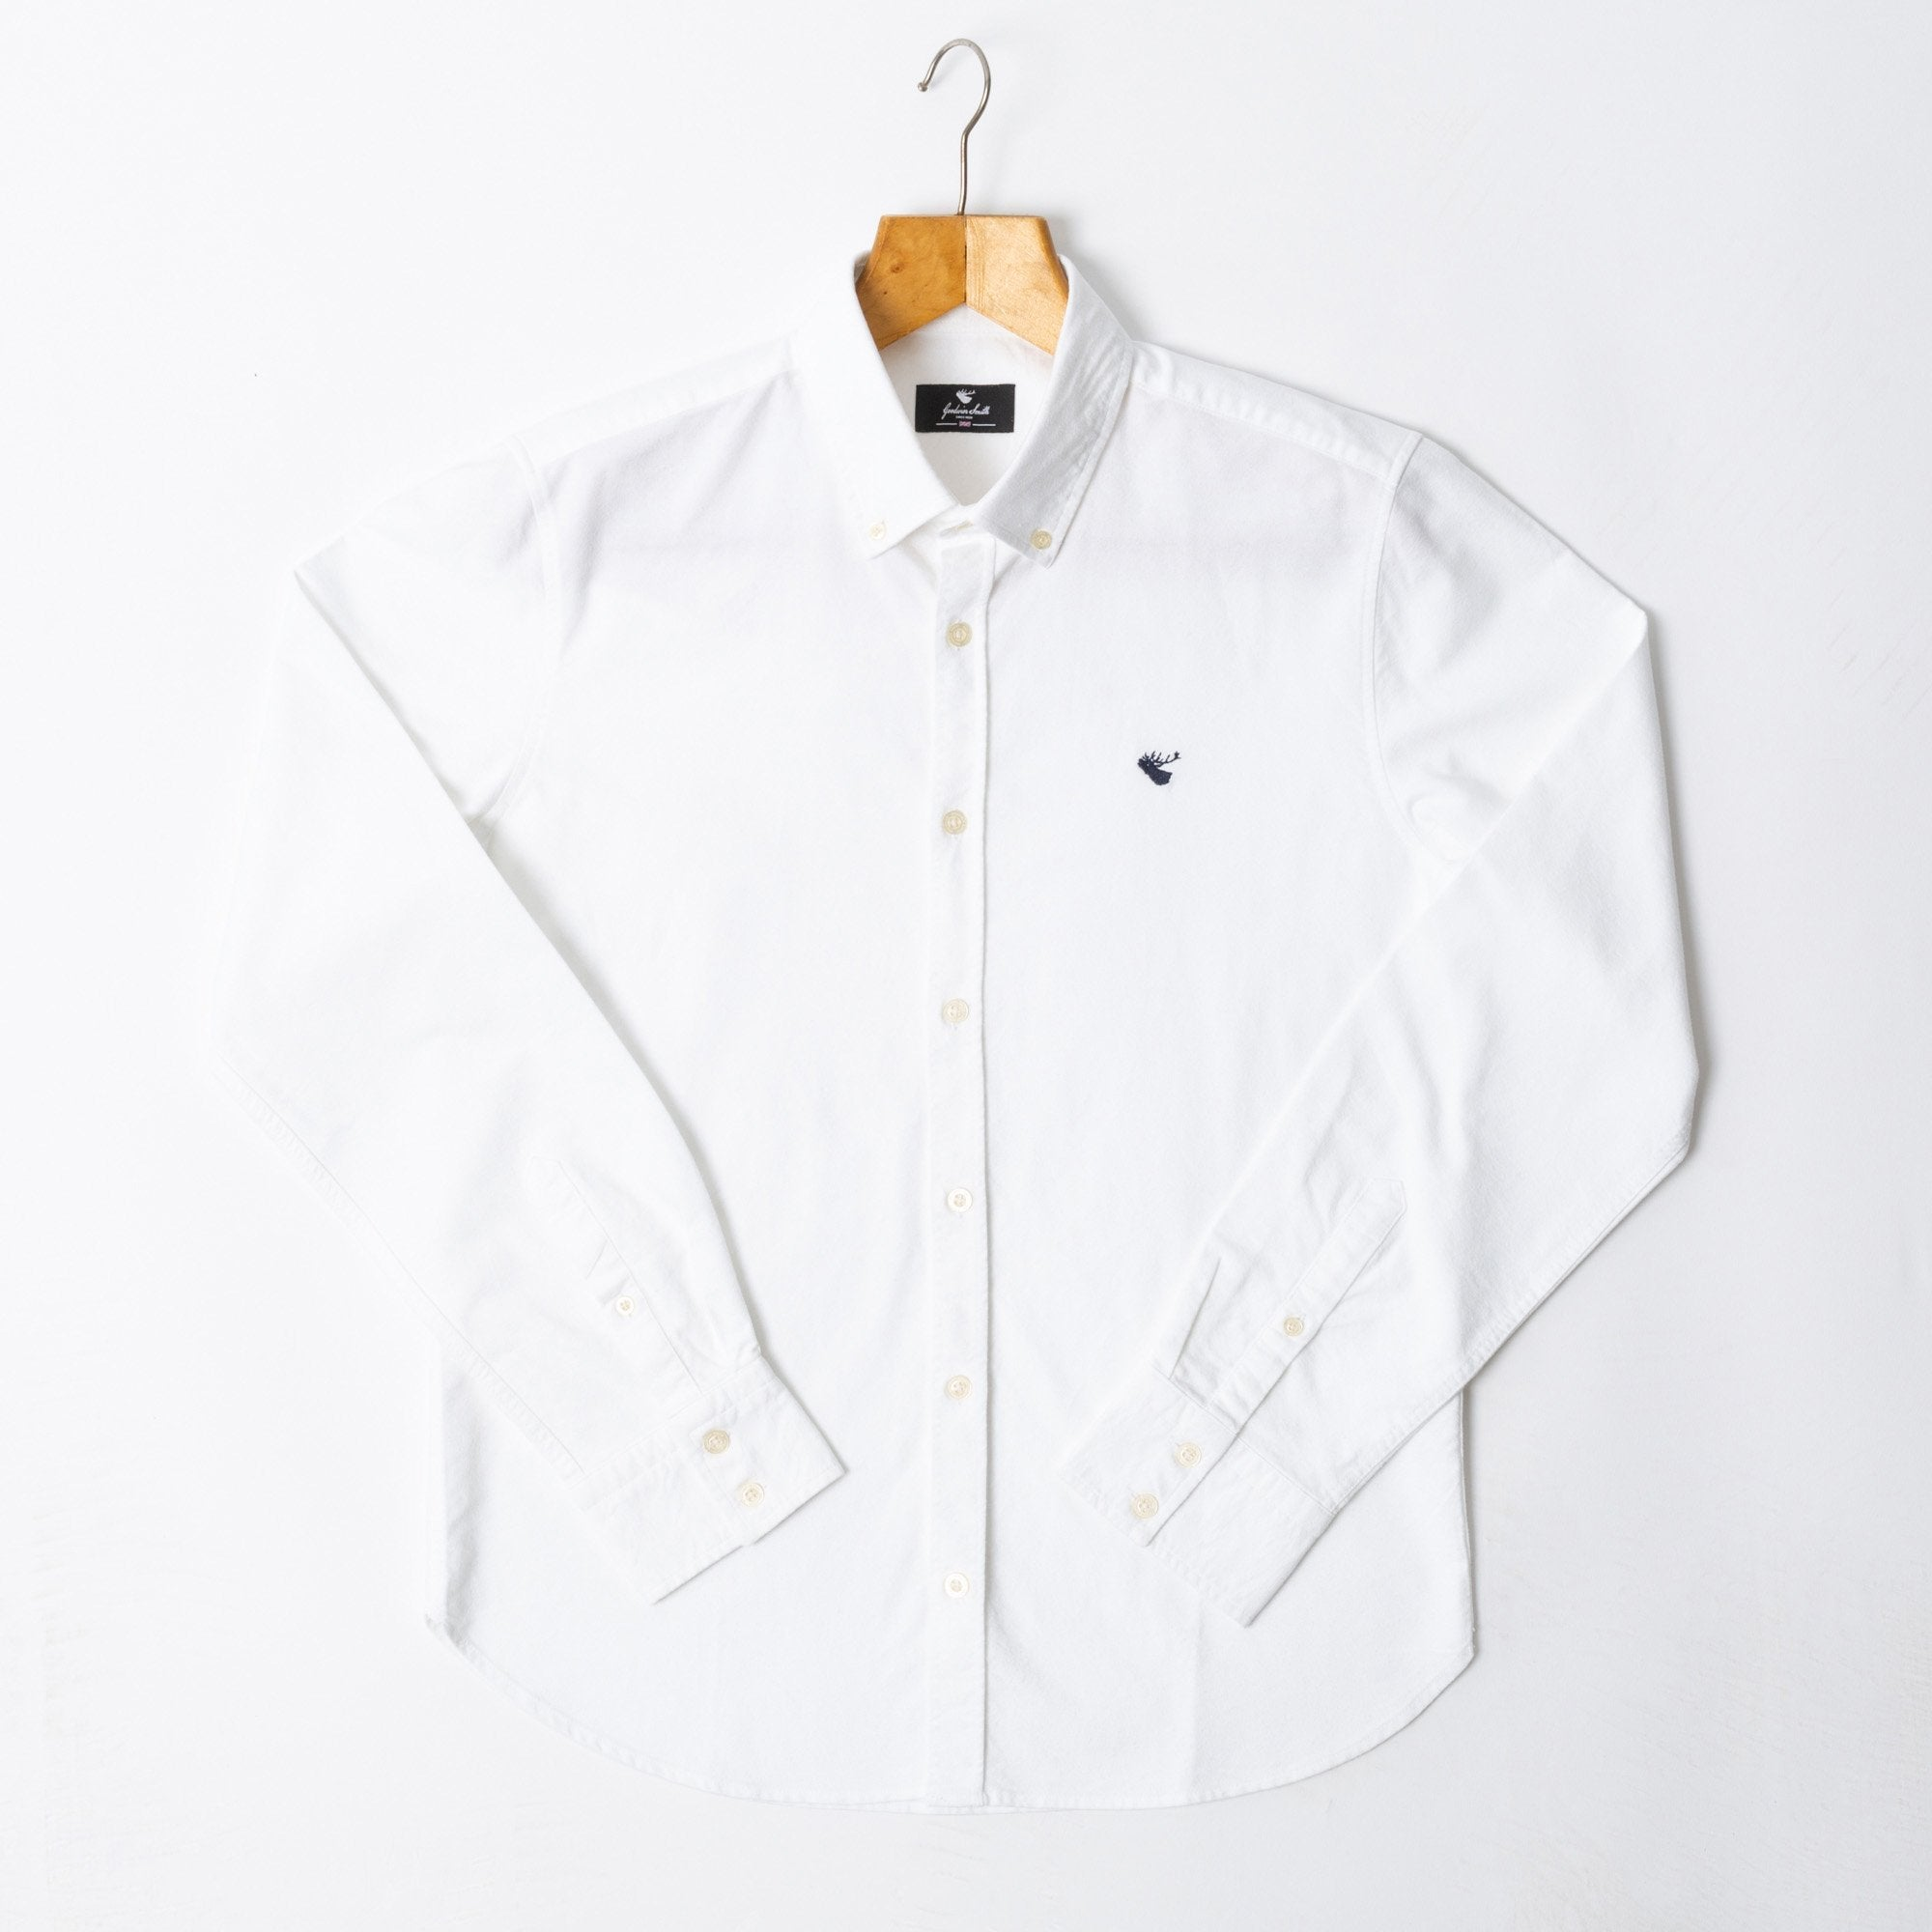 Goodwin Smith Clothing S / White / Cotton ARGYLE WHITE